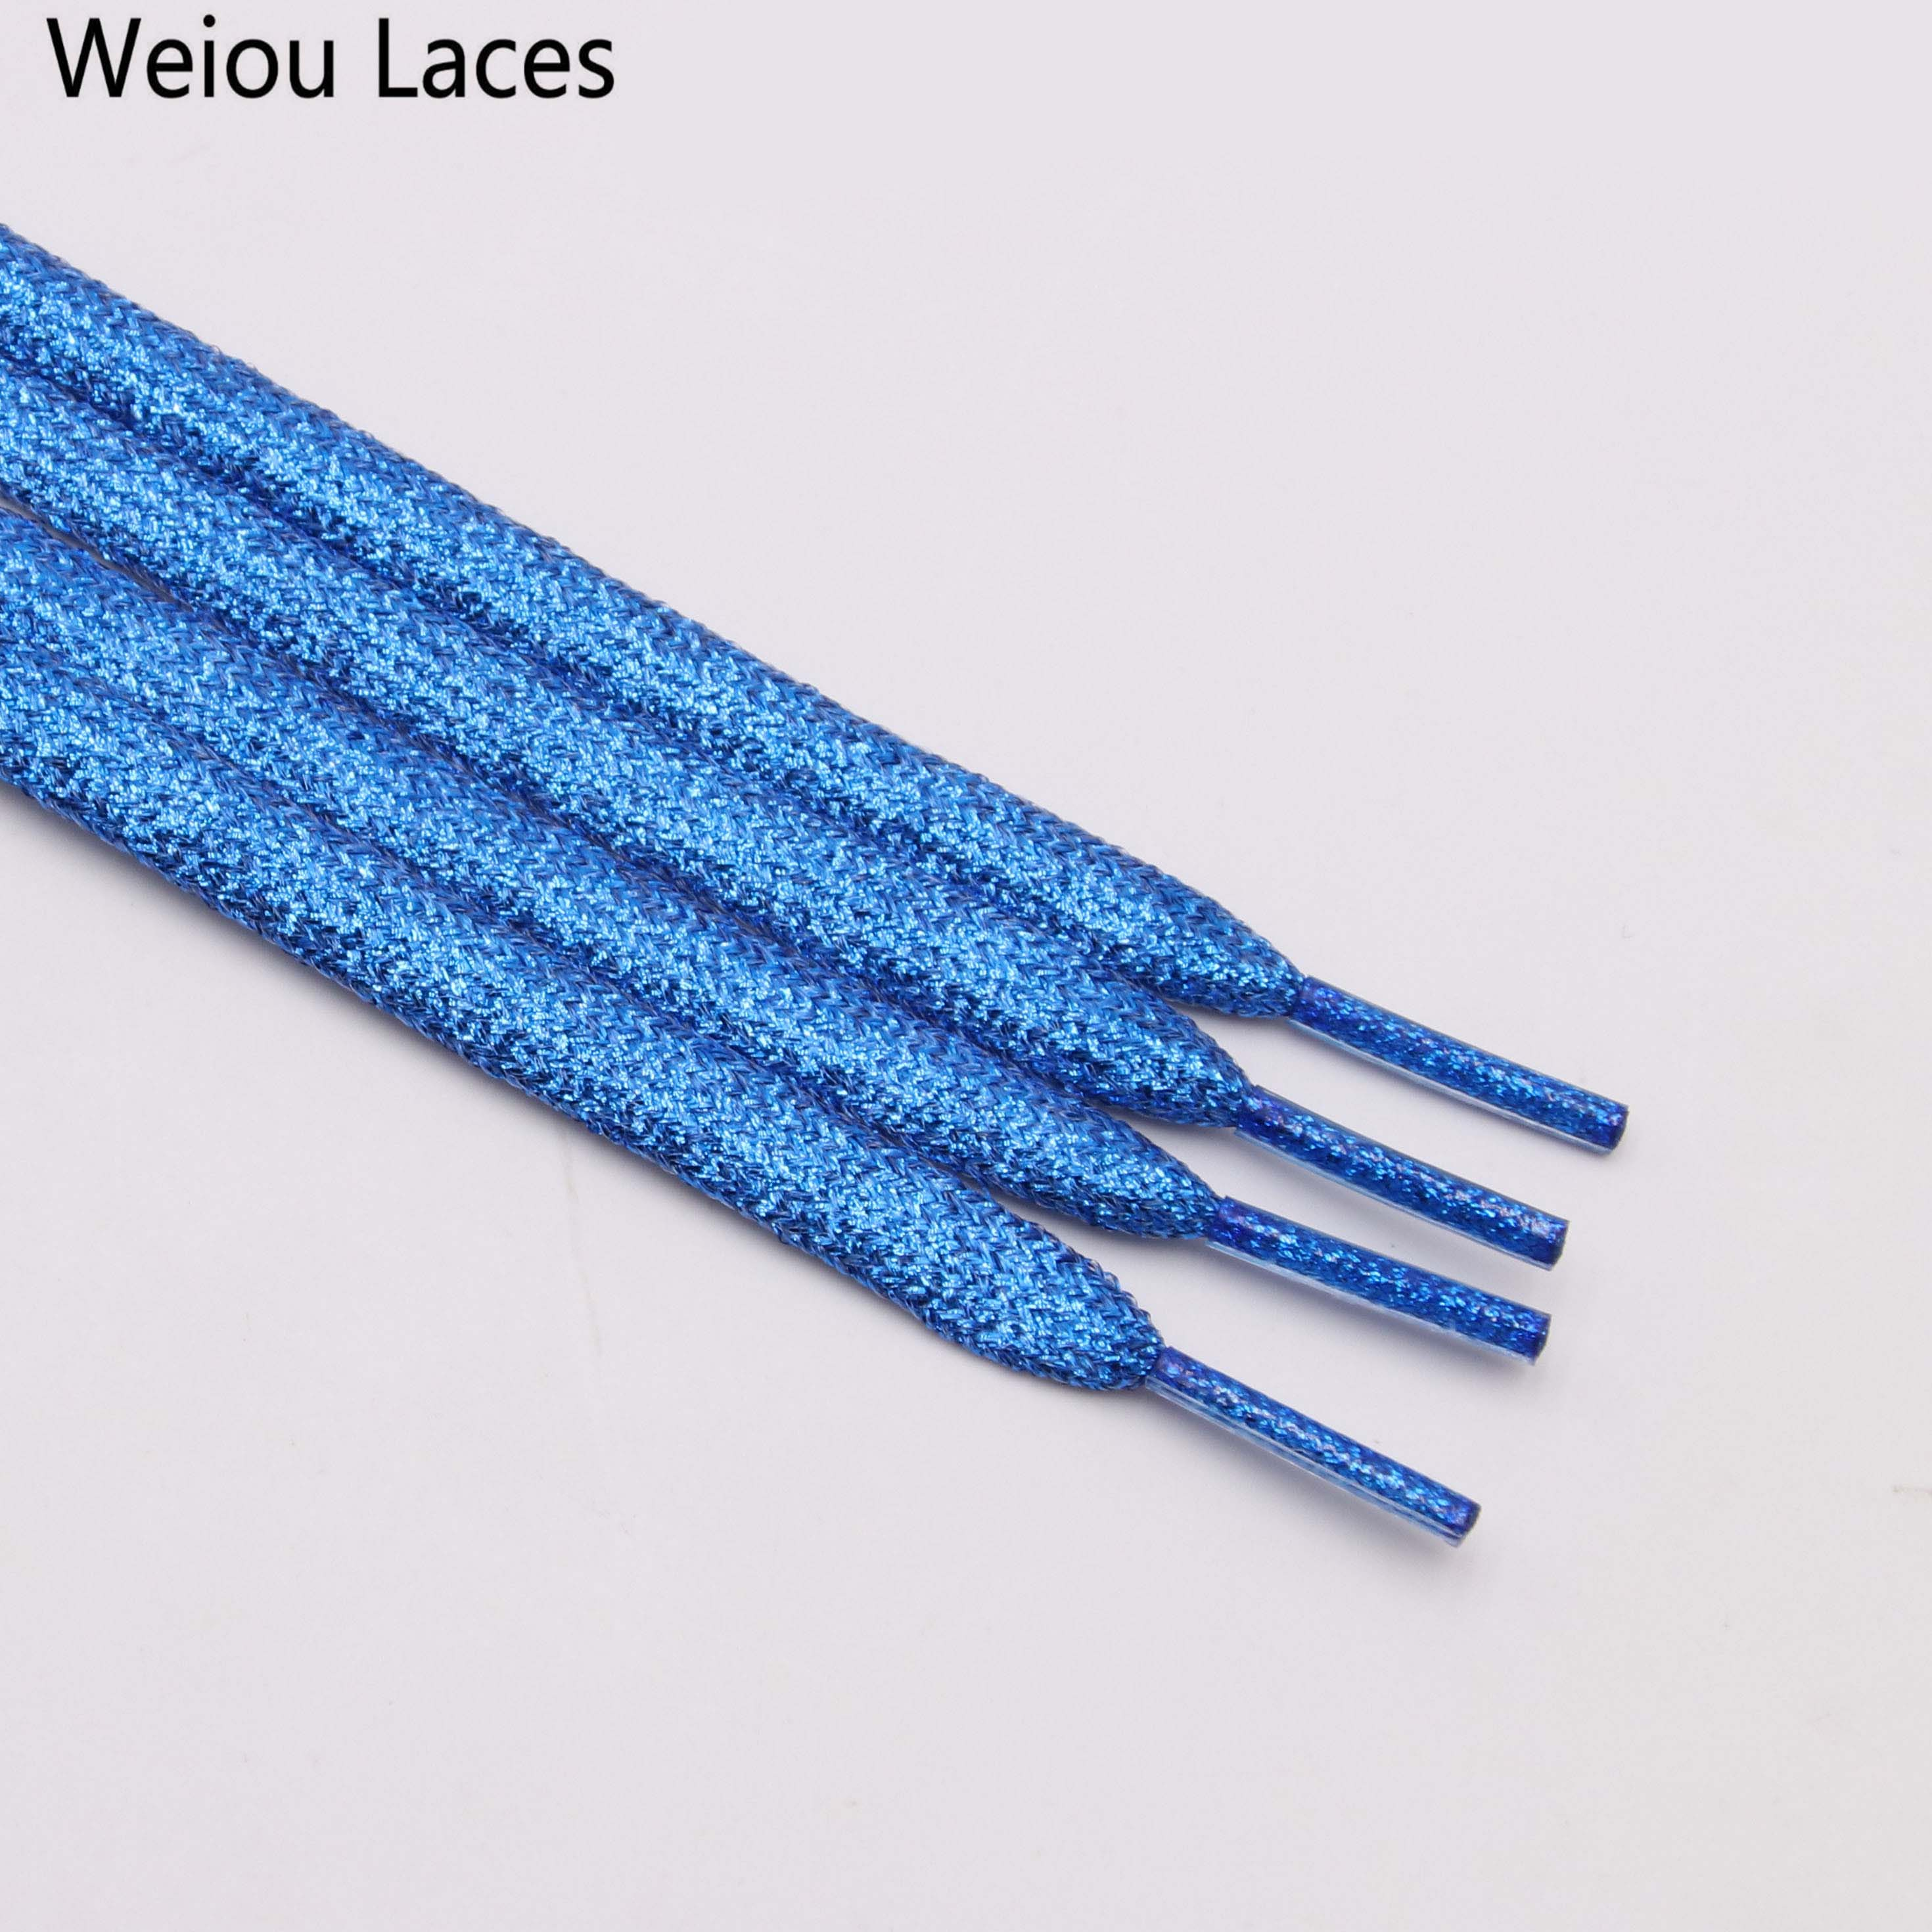 Xuansi manufacture pure mental shoestrings Cool shoes design glitter shoelaces order shoelaces online